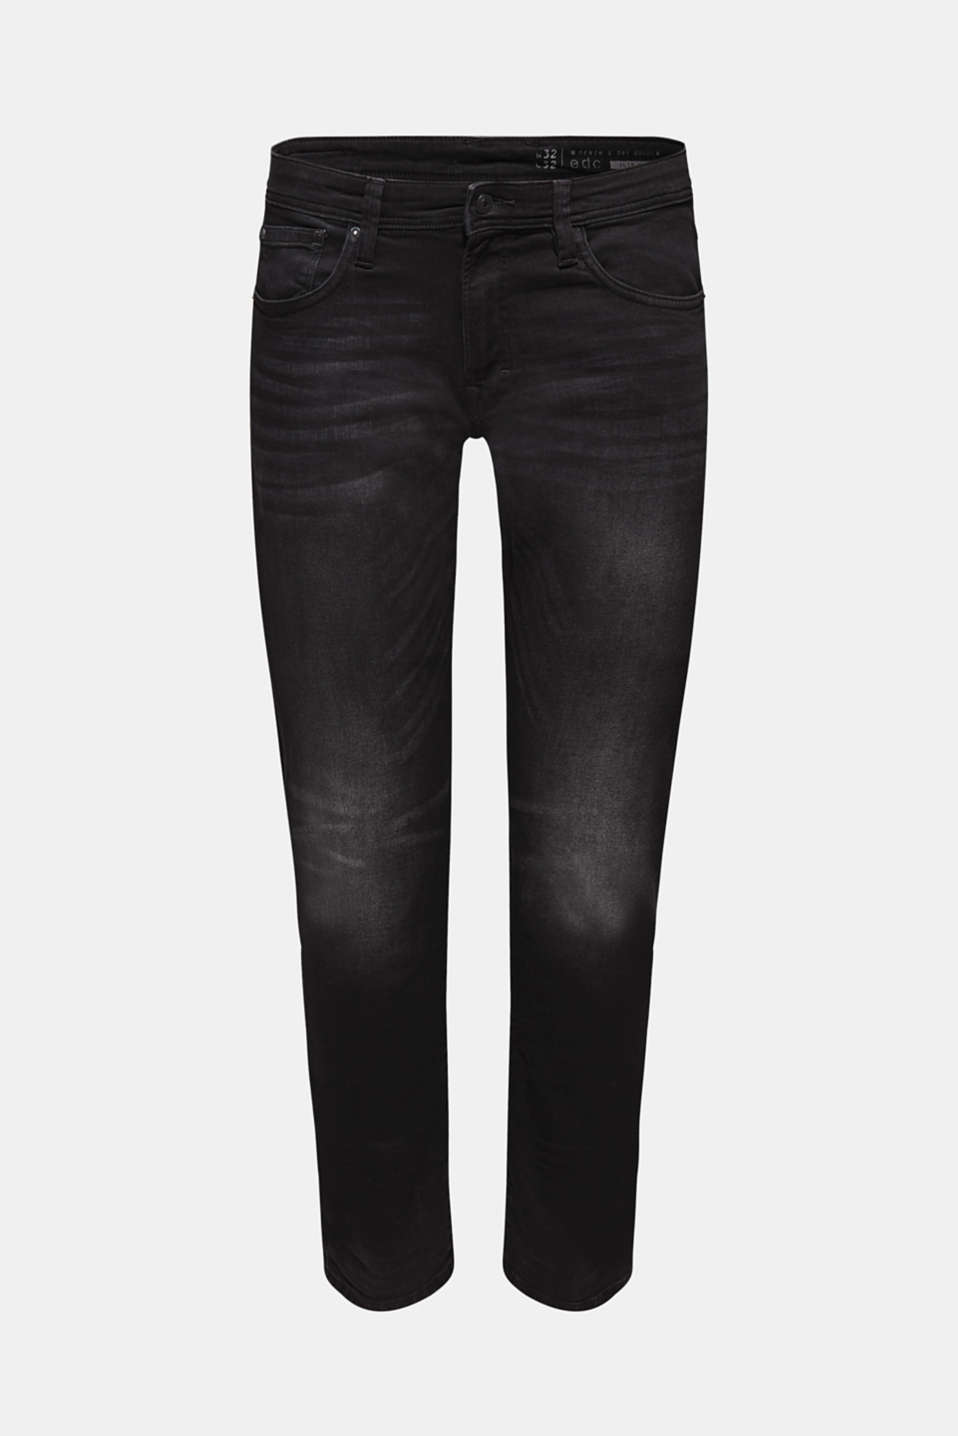 Black stretch jeans, BLACK DARK WASH, detail image number 6